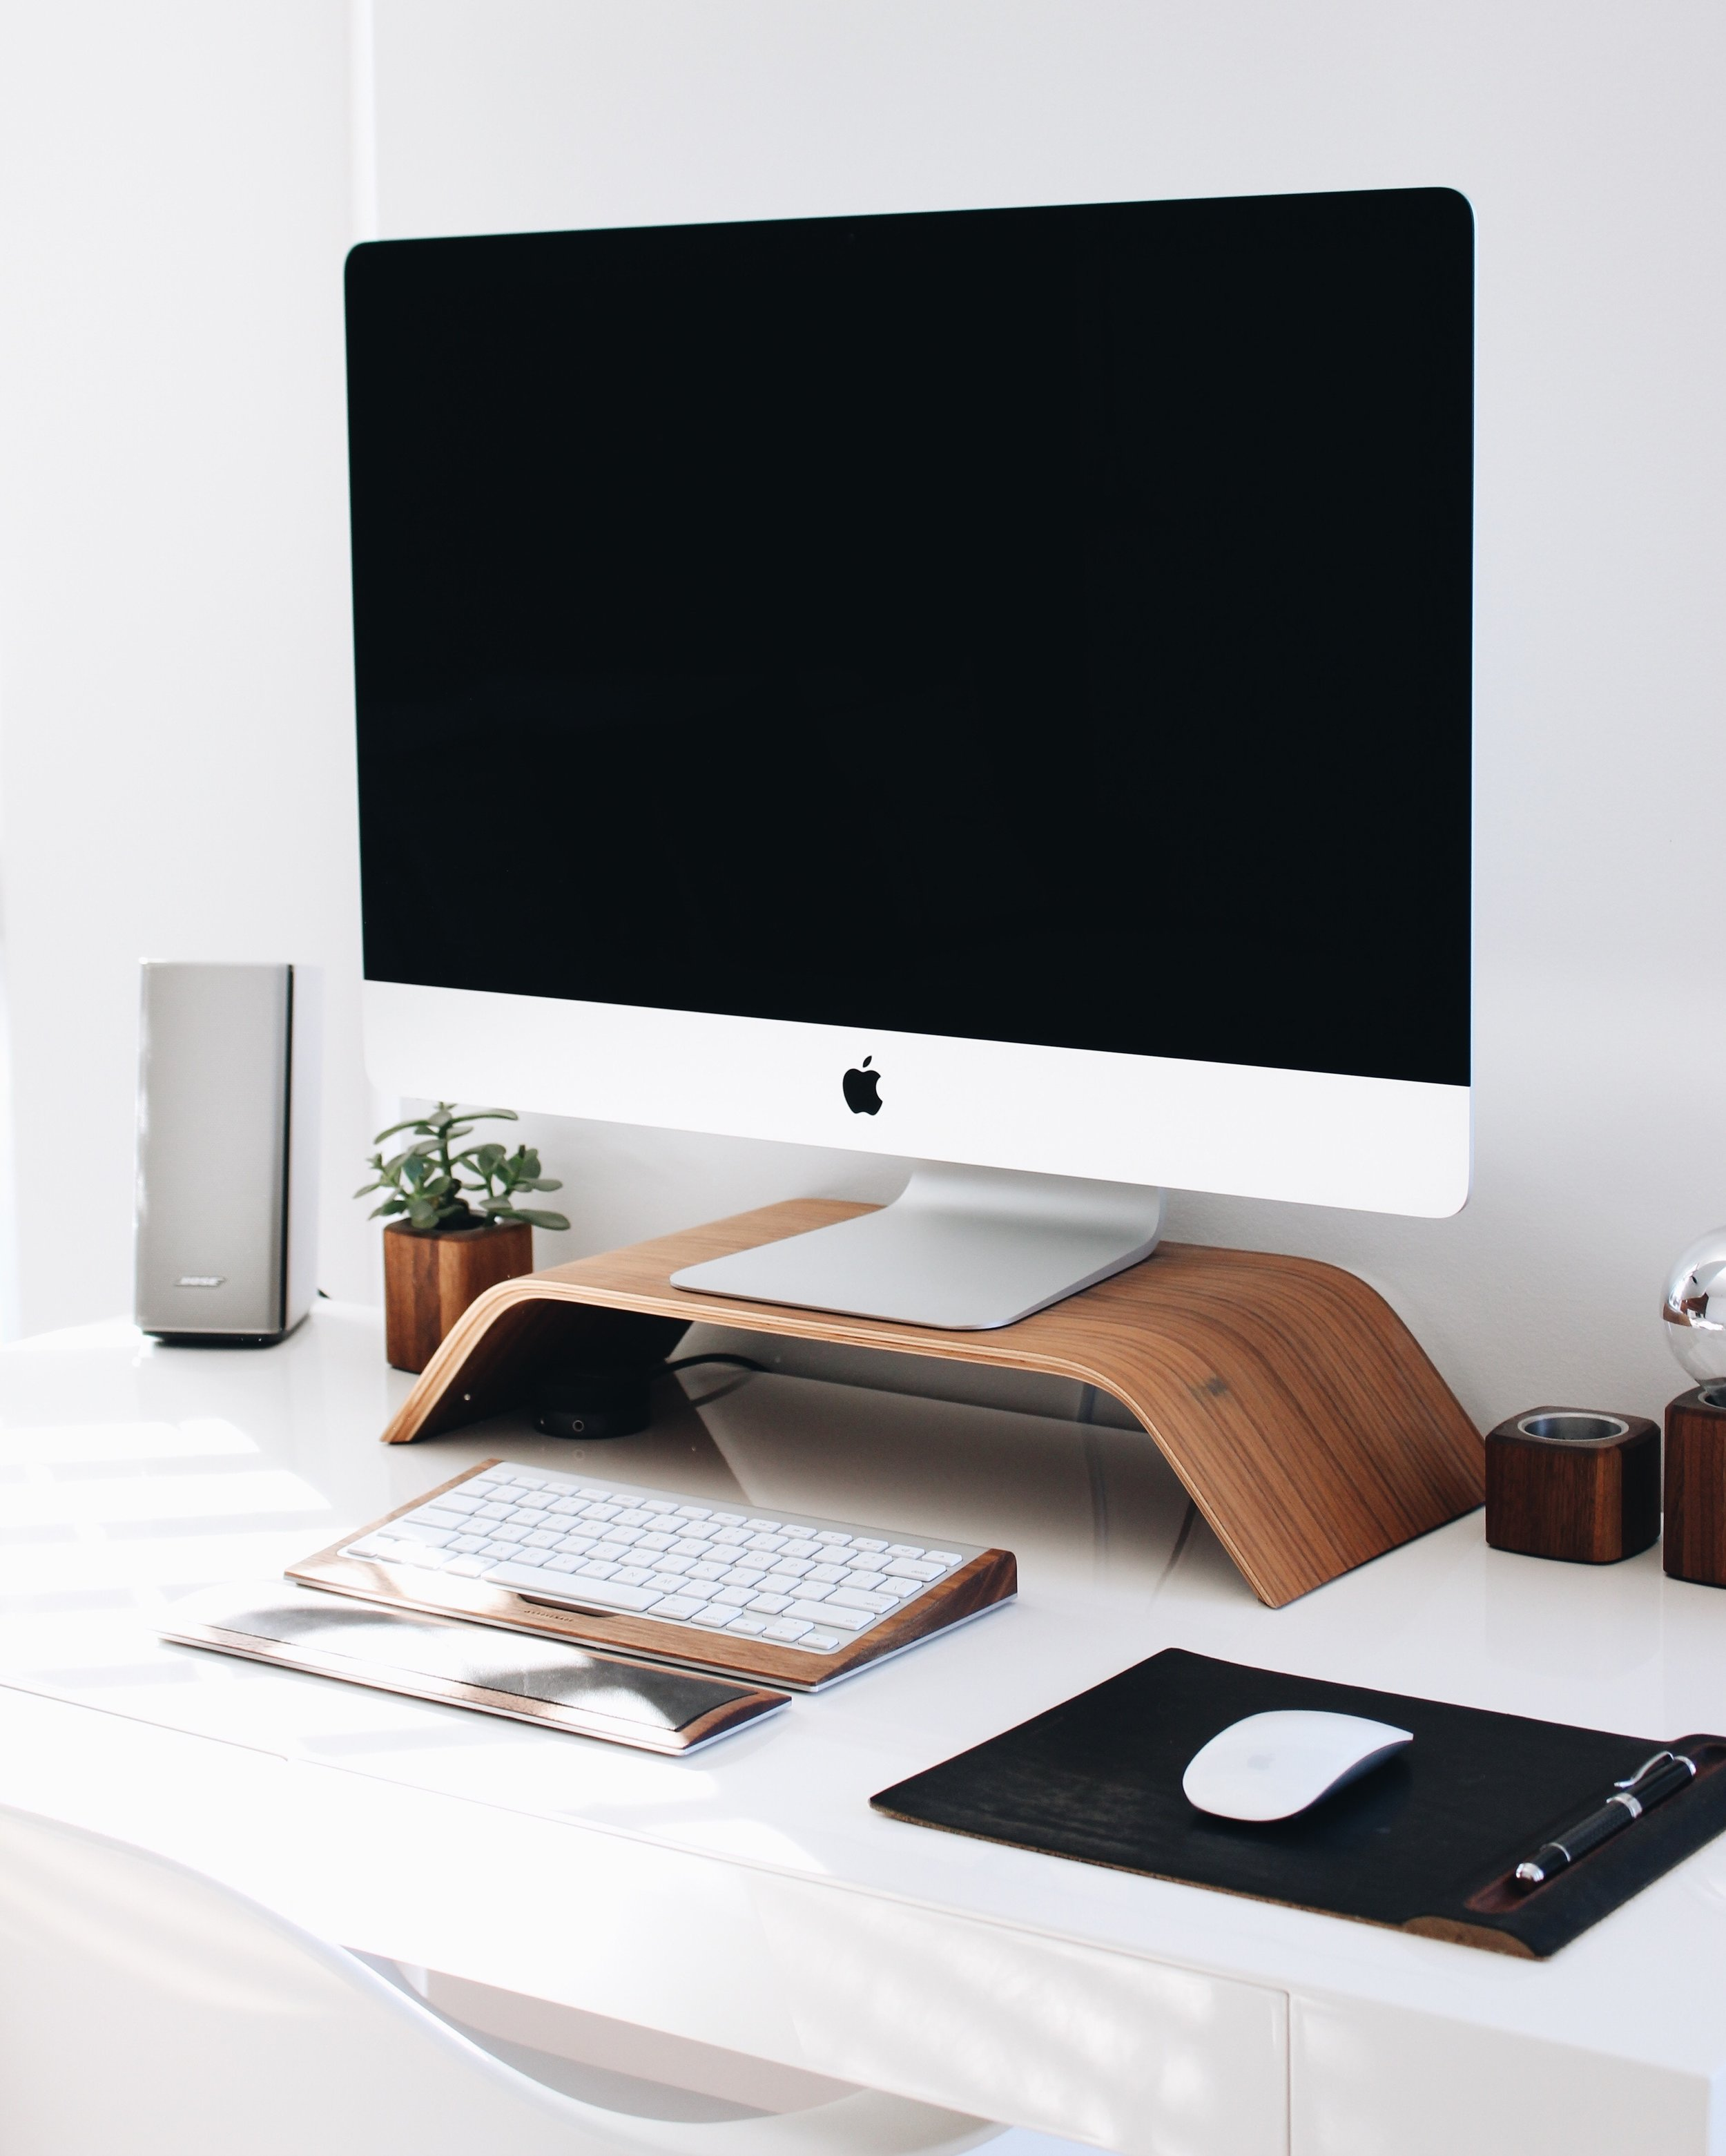 Mac & PC sales and services